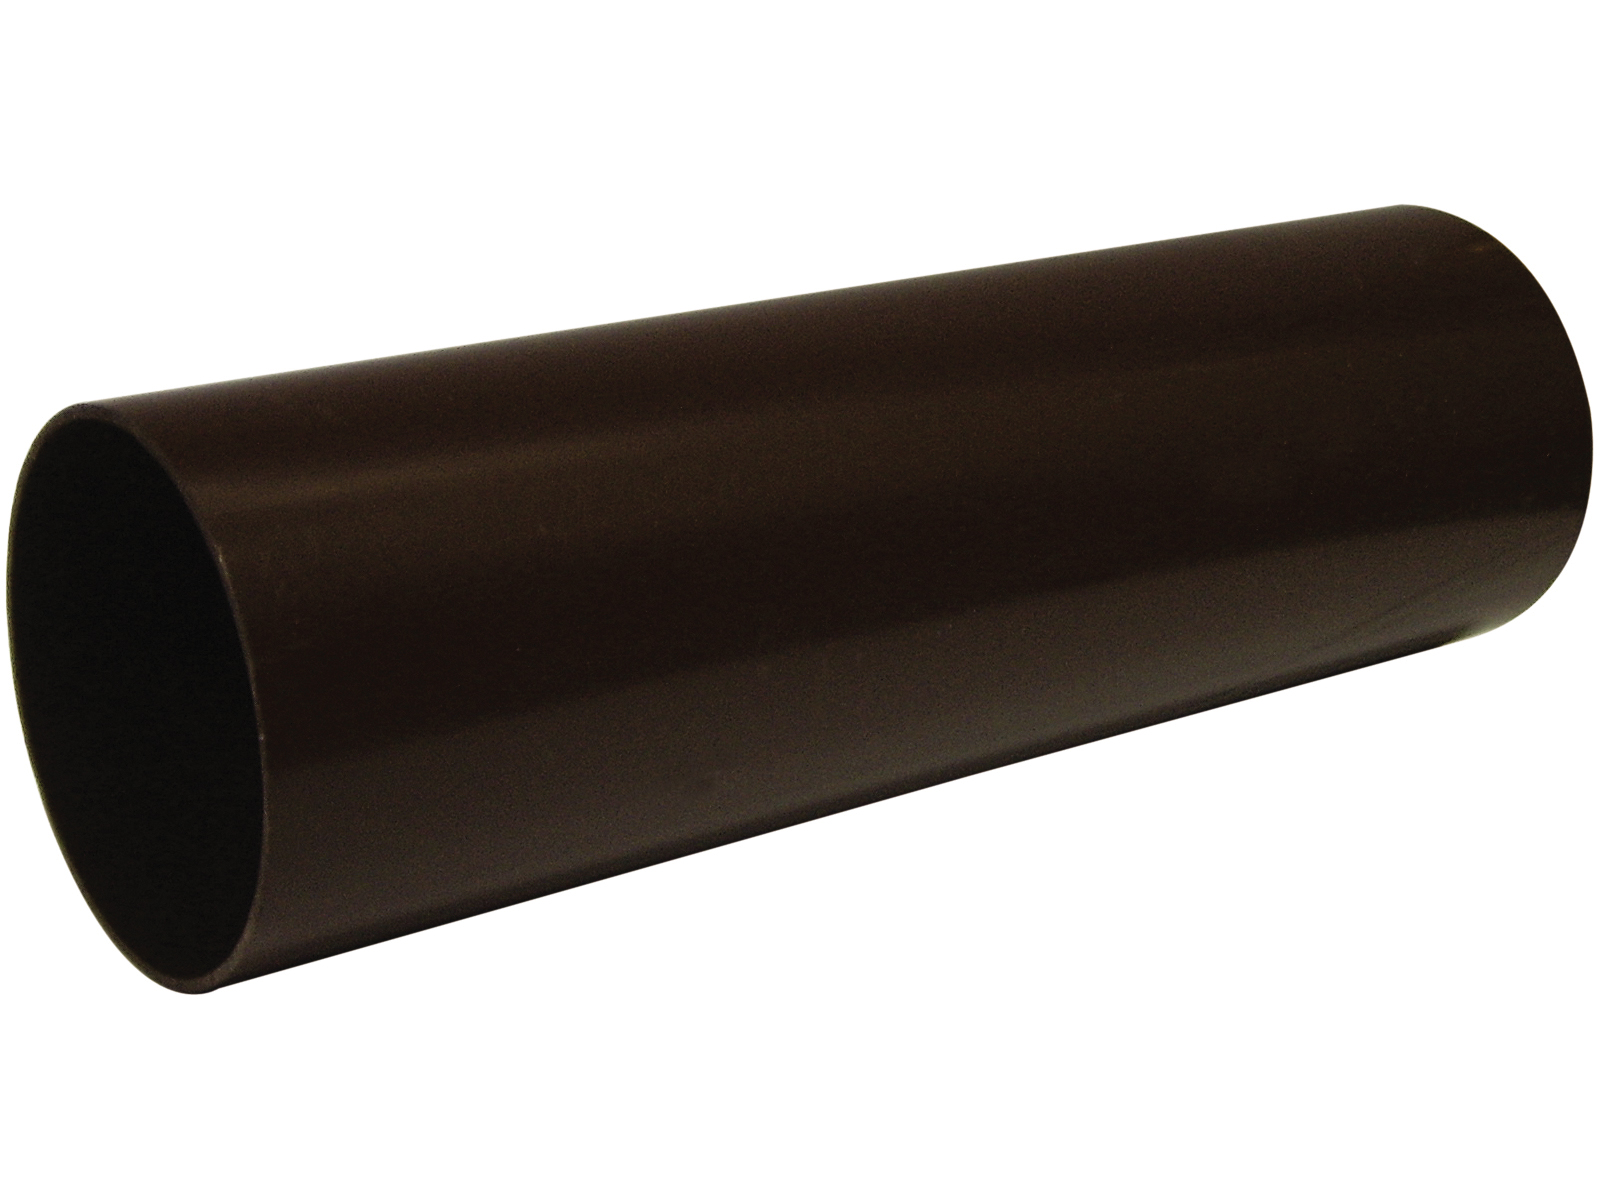 FLOPLAST RP2.5BR 68MM ROUND DOWNPIPE - RP2.5- BROWN